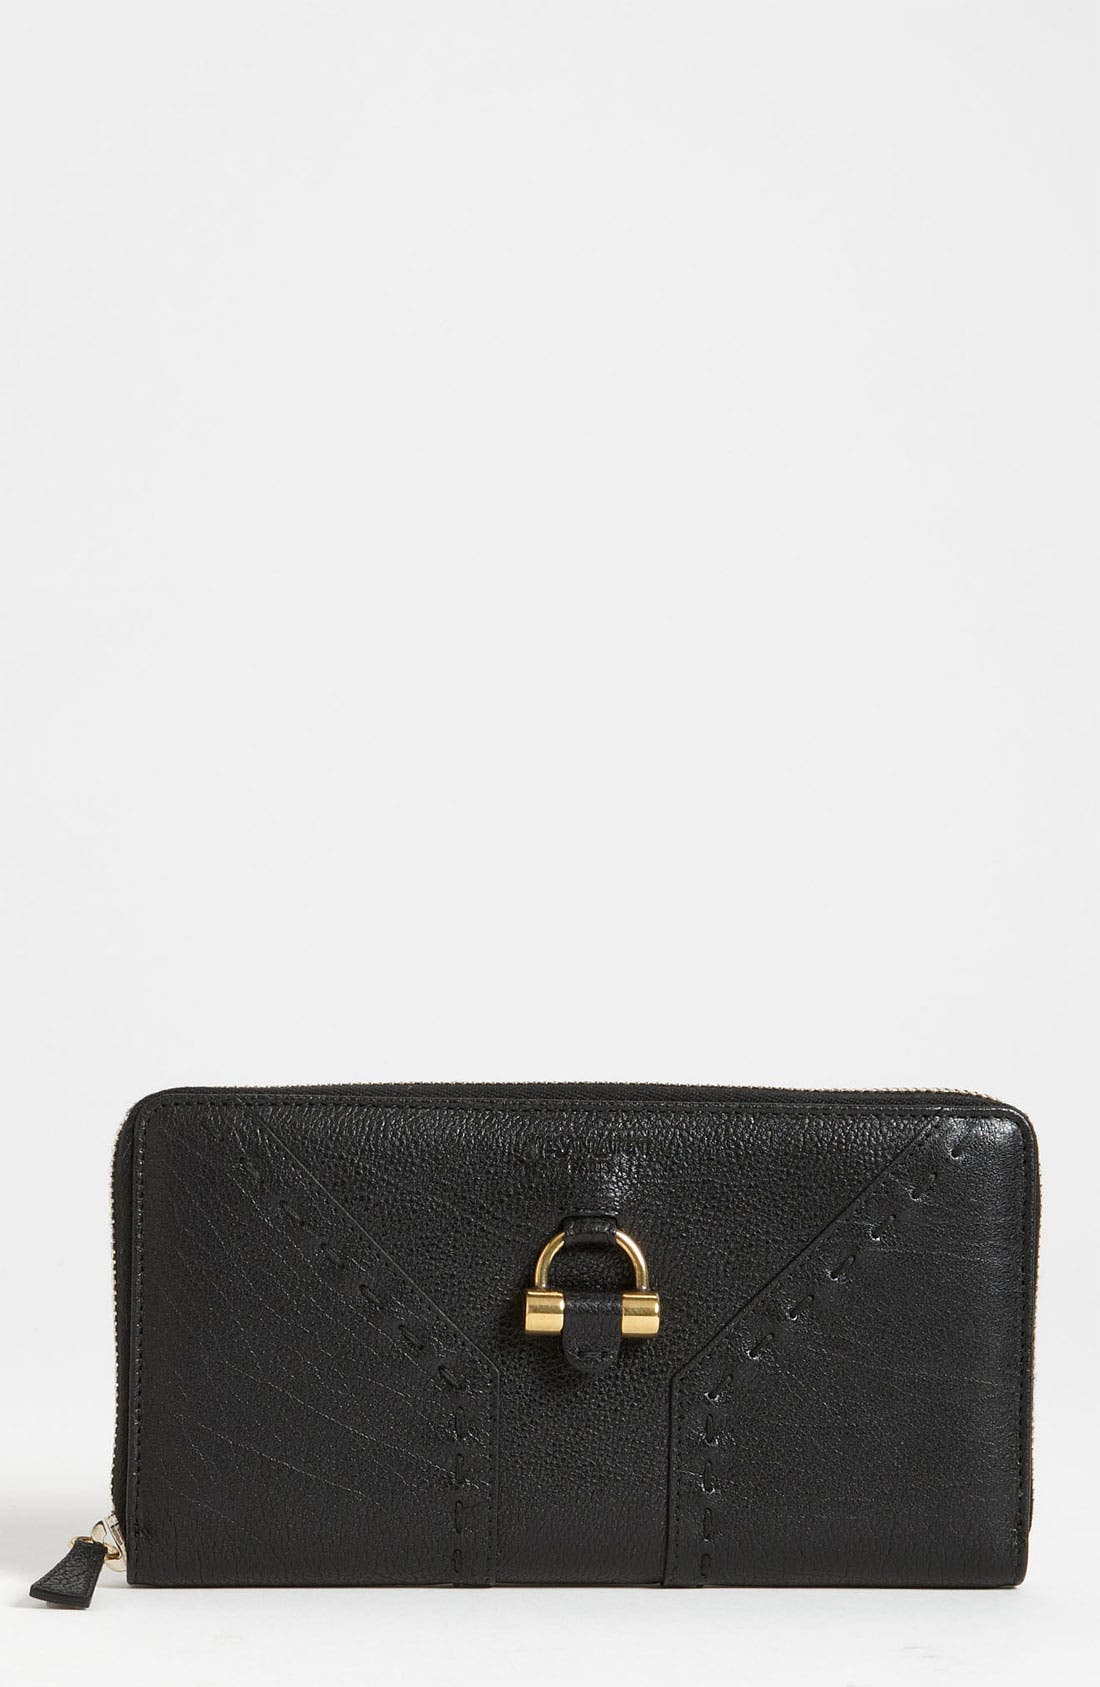 Main Image - Yves Saint Laurent 'Muse' Leather Wallet